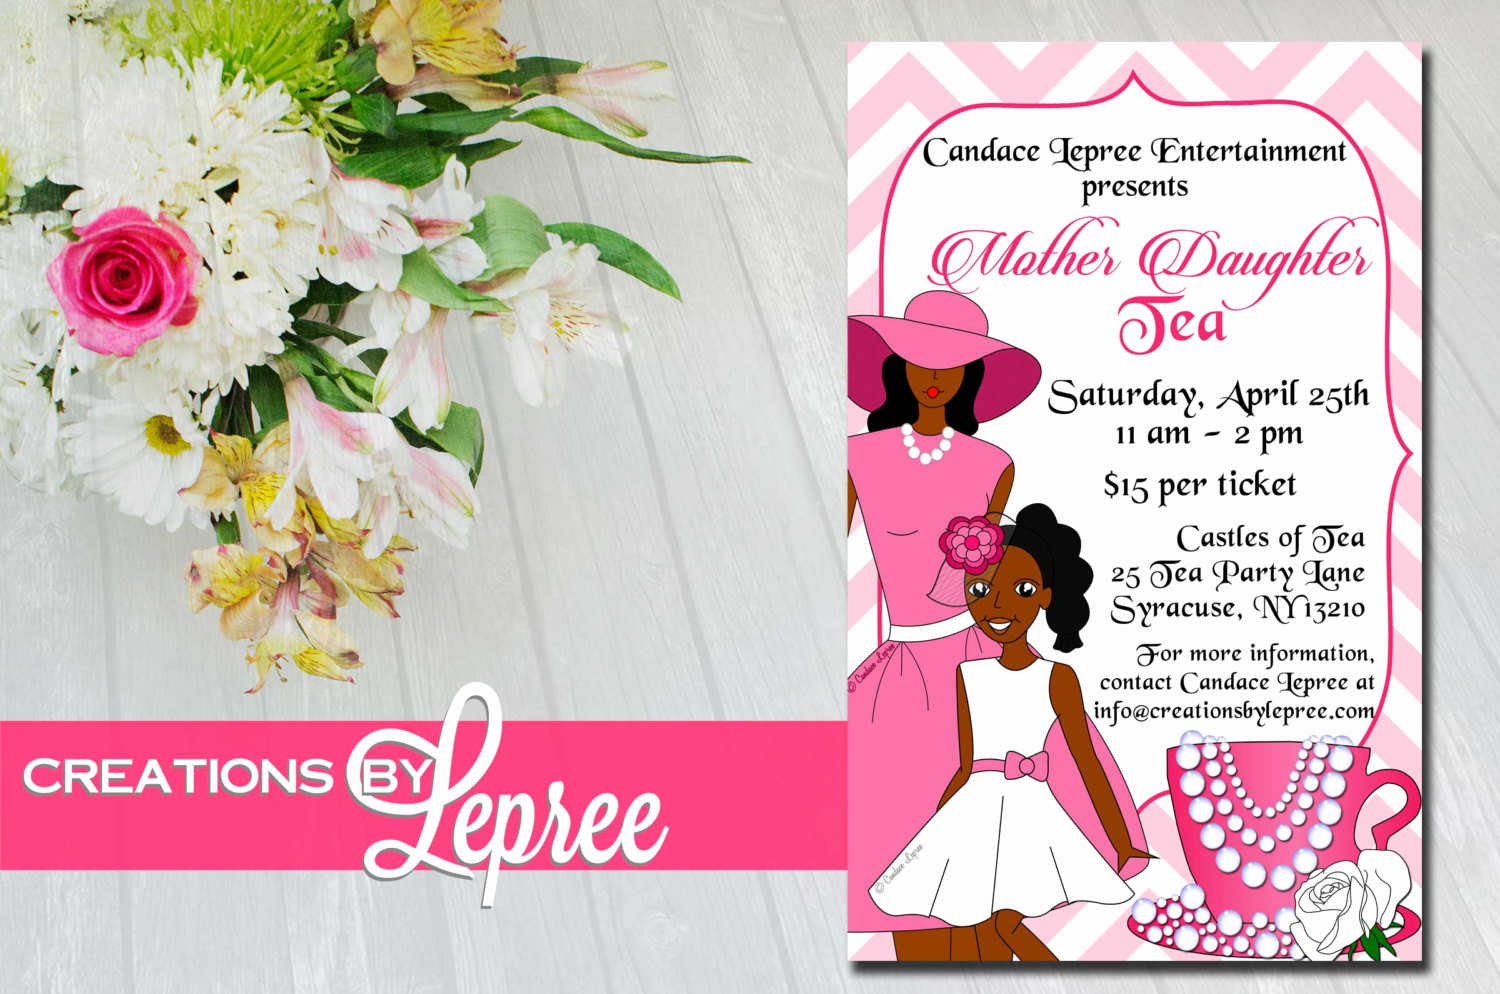 Mother Daughter Tea Invitation Awesome Pink Chevron Illustrated Mother Daughter Tea Invitation with